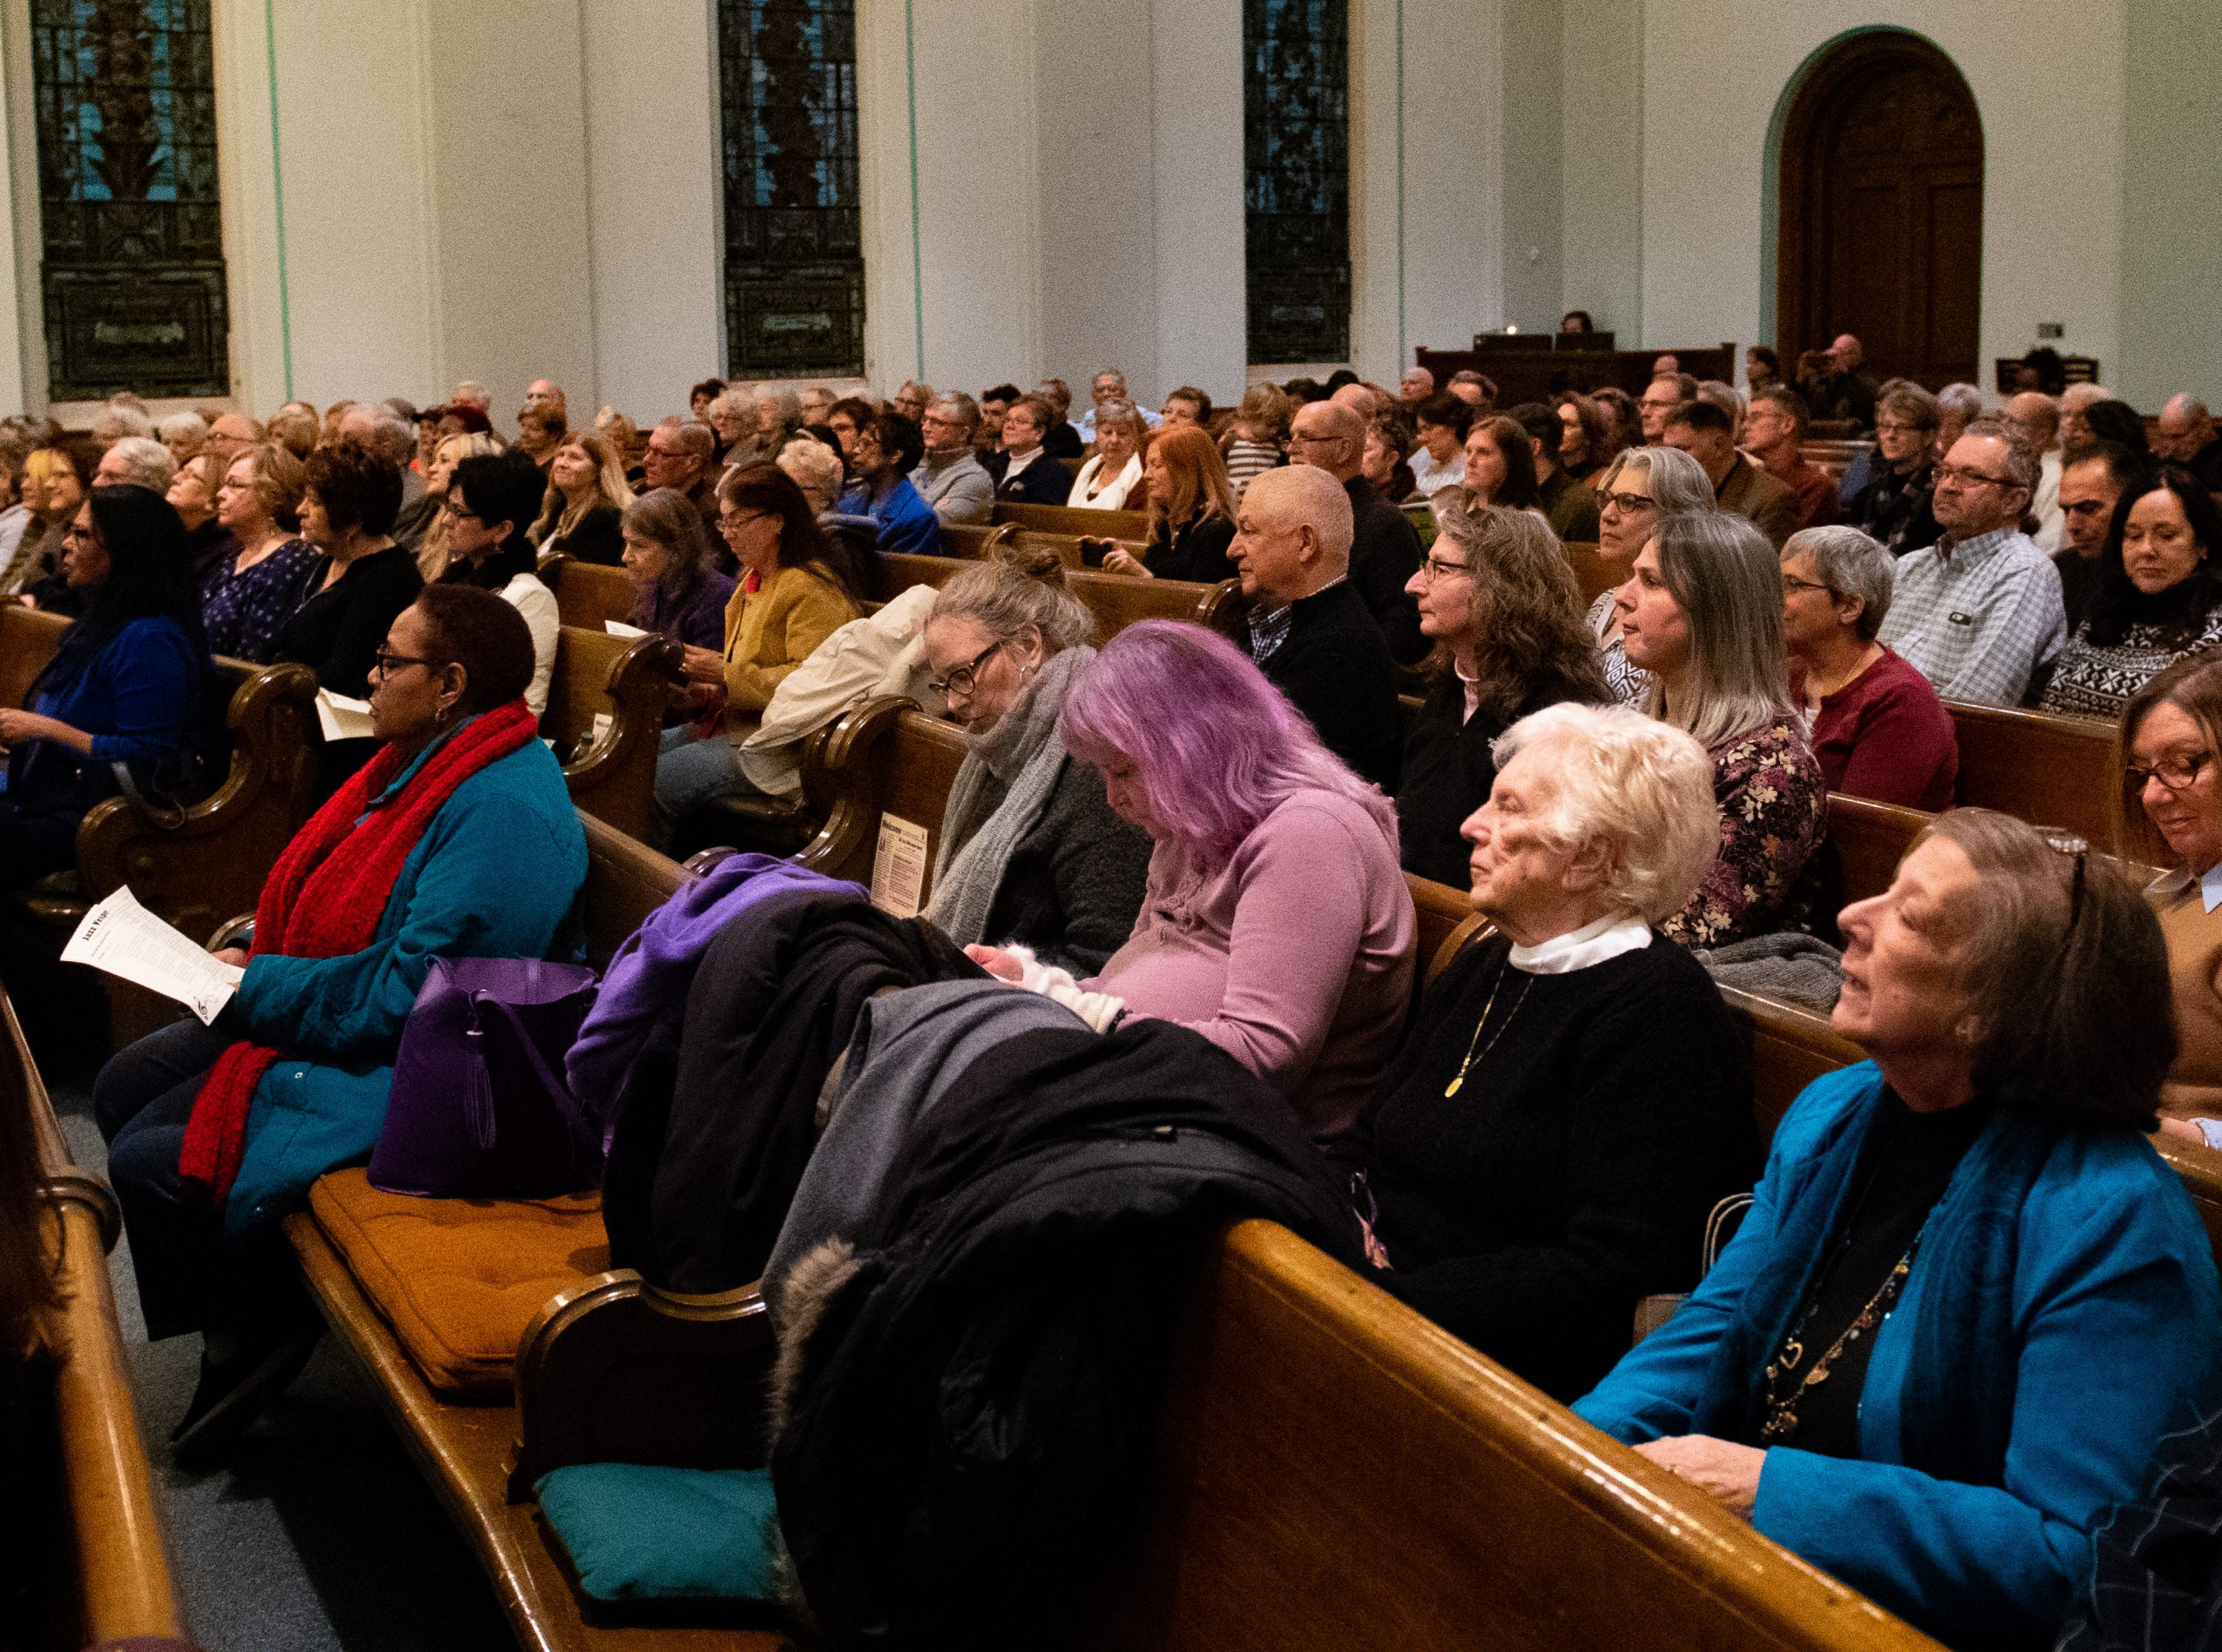 Hundreds of Yorkers sit listening to the featured band playing soulful songs during the 21st annual Jazz Vespers concert at First Presbyterian Church in York, January 12, 2019.